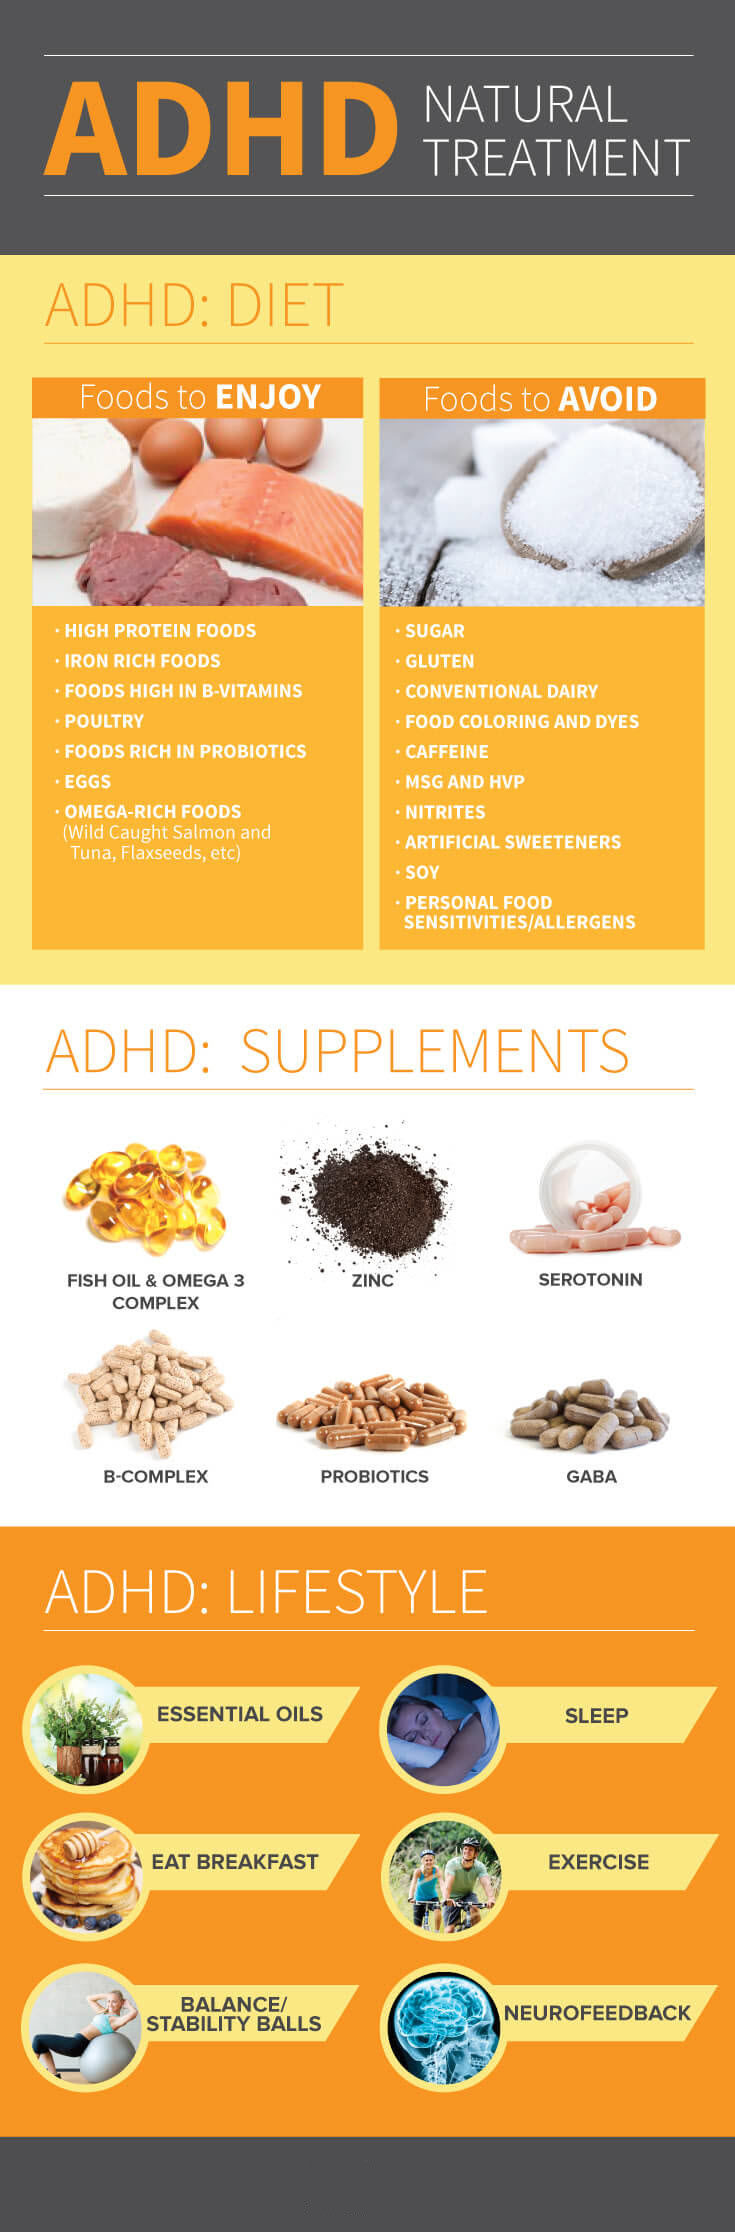 ADHD Natural Treatment Infographic Chart - MKexpress.net